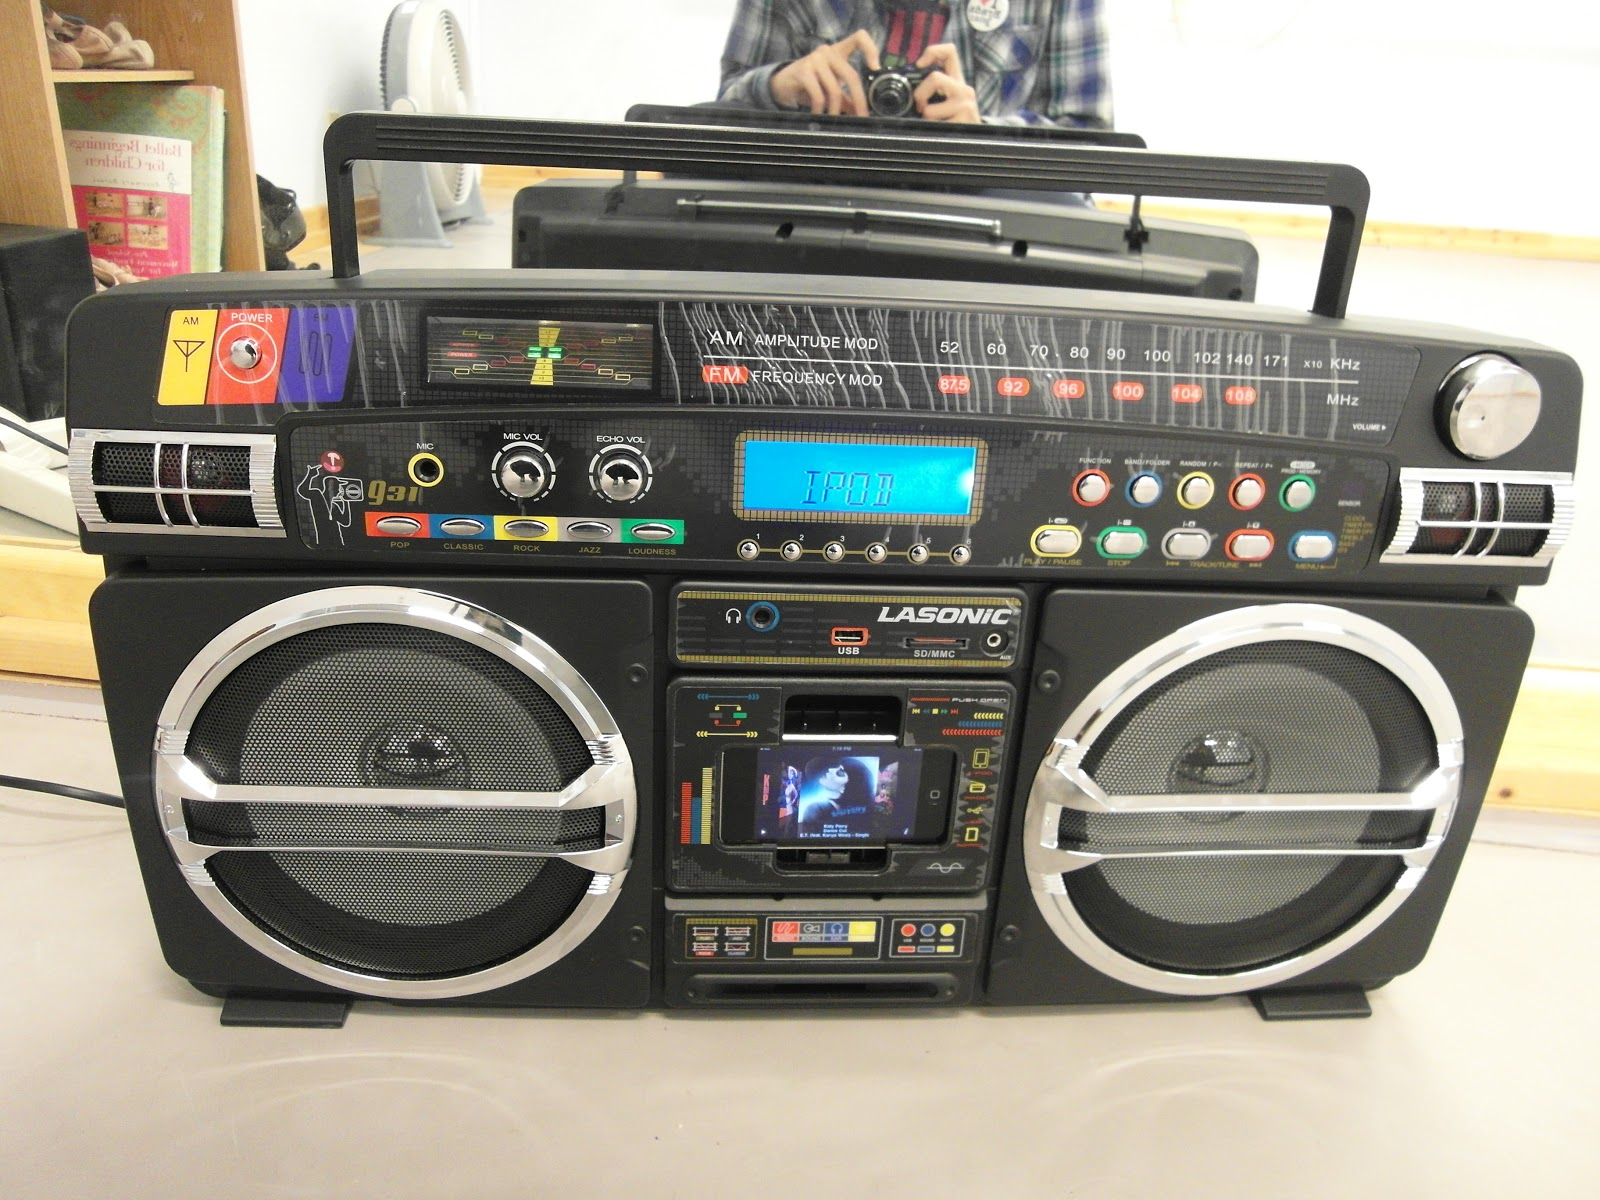 Bradly johnson brads1star ipod boombox - Lasonic ghetto blaster i931x ...